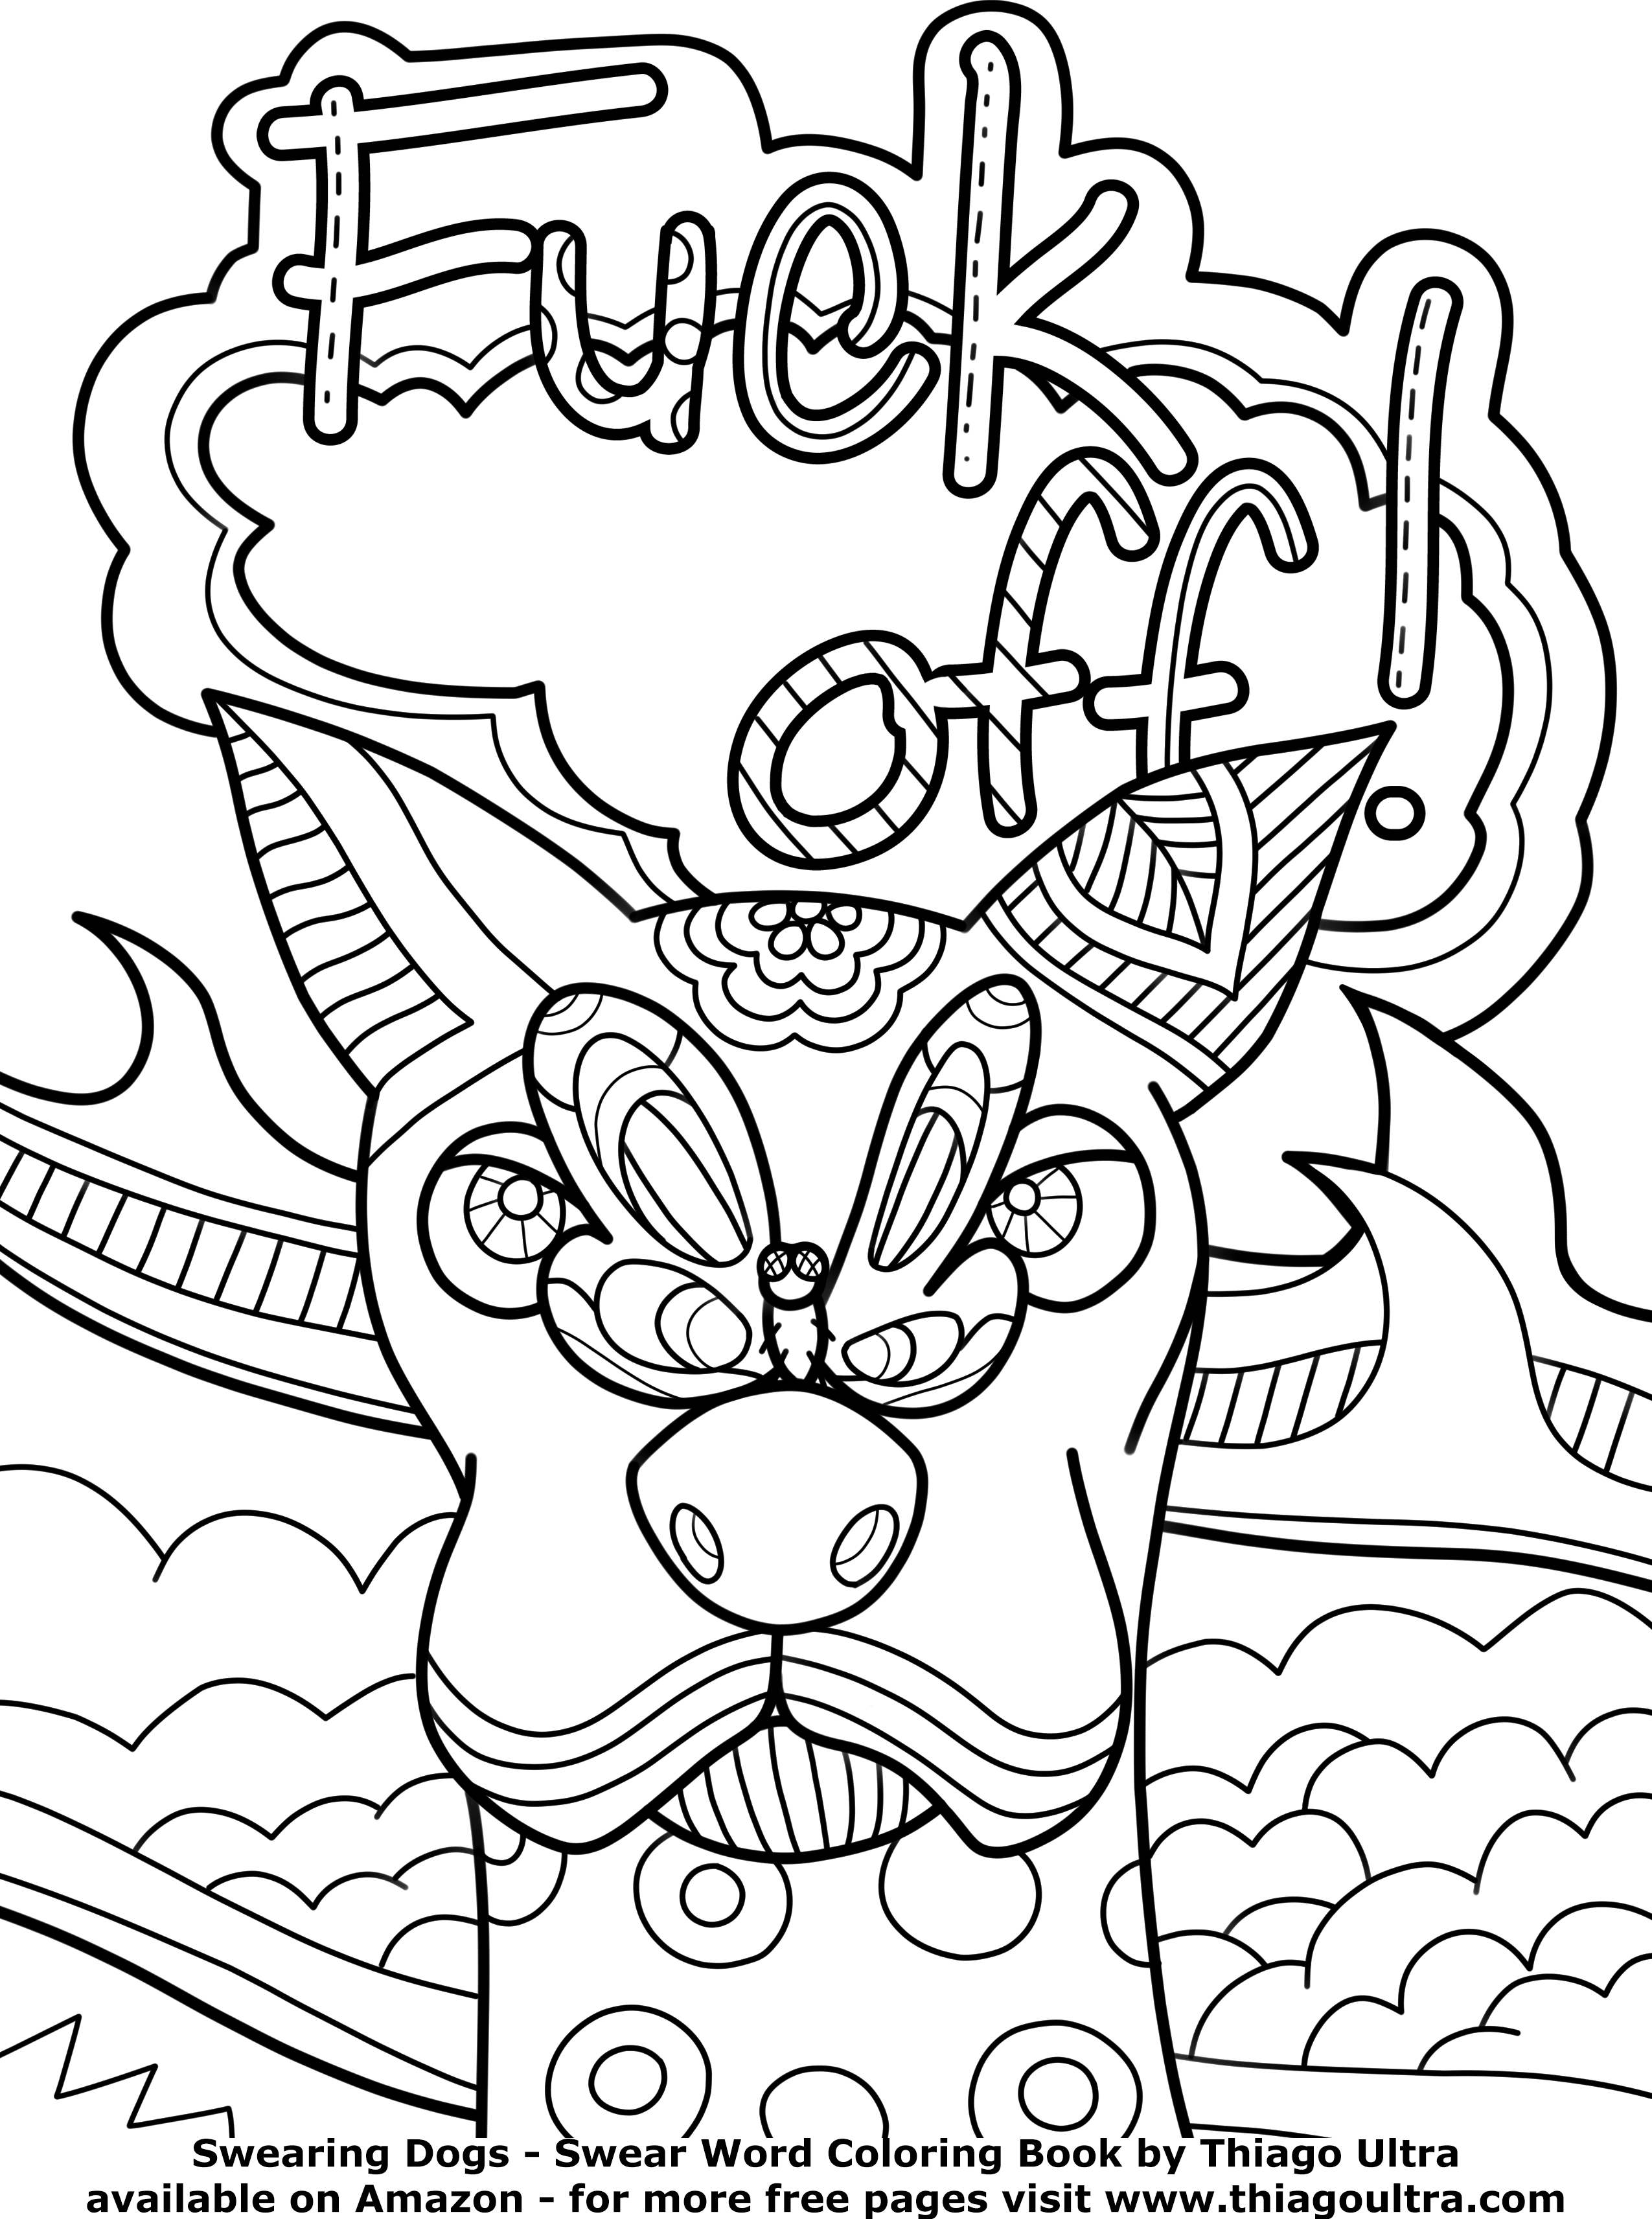 coloring books for adults bad words 38 best self love coloring pages images on pinterest coloring books bad for words adults